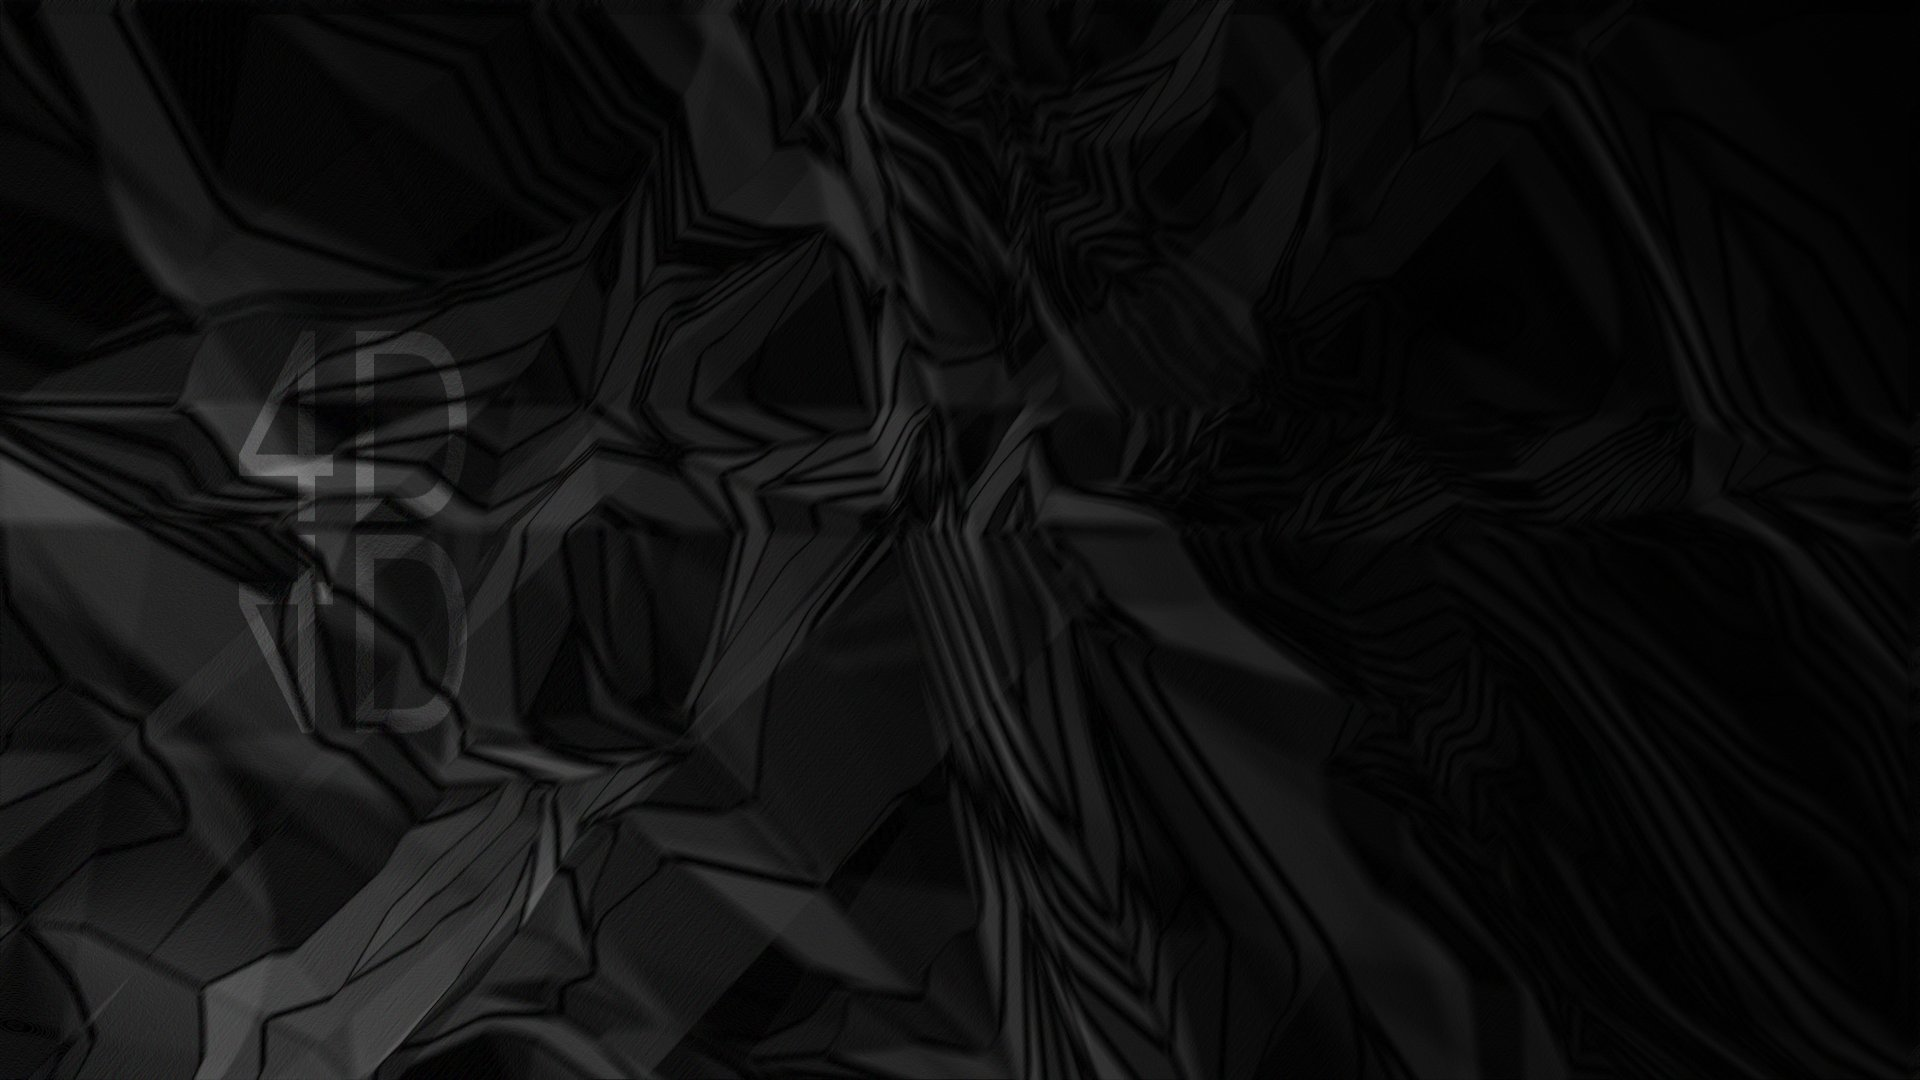 1920x1080 Abstracto Full Hd 1920x1080: Dark Abstract Wallpapers 1920x1080 Full HD (1080p) Desktop